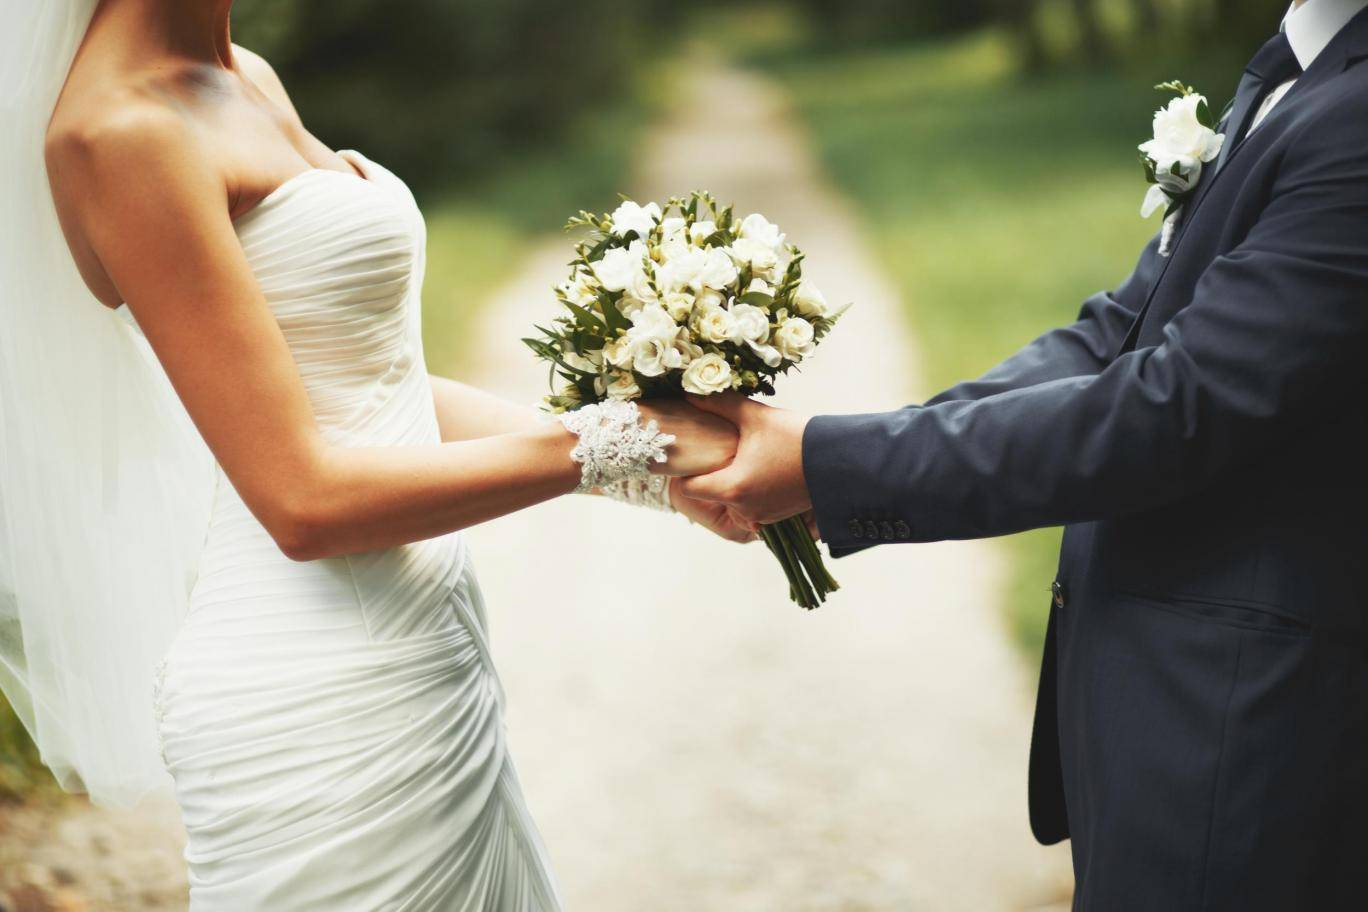 Newlyweds more likely to gain weight, scientists find